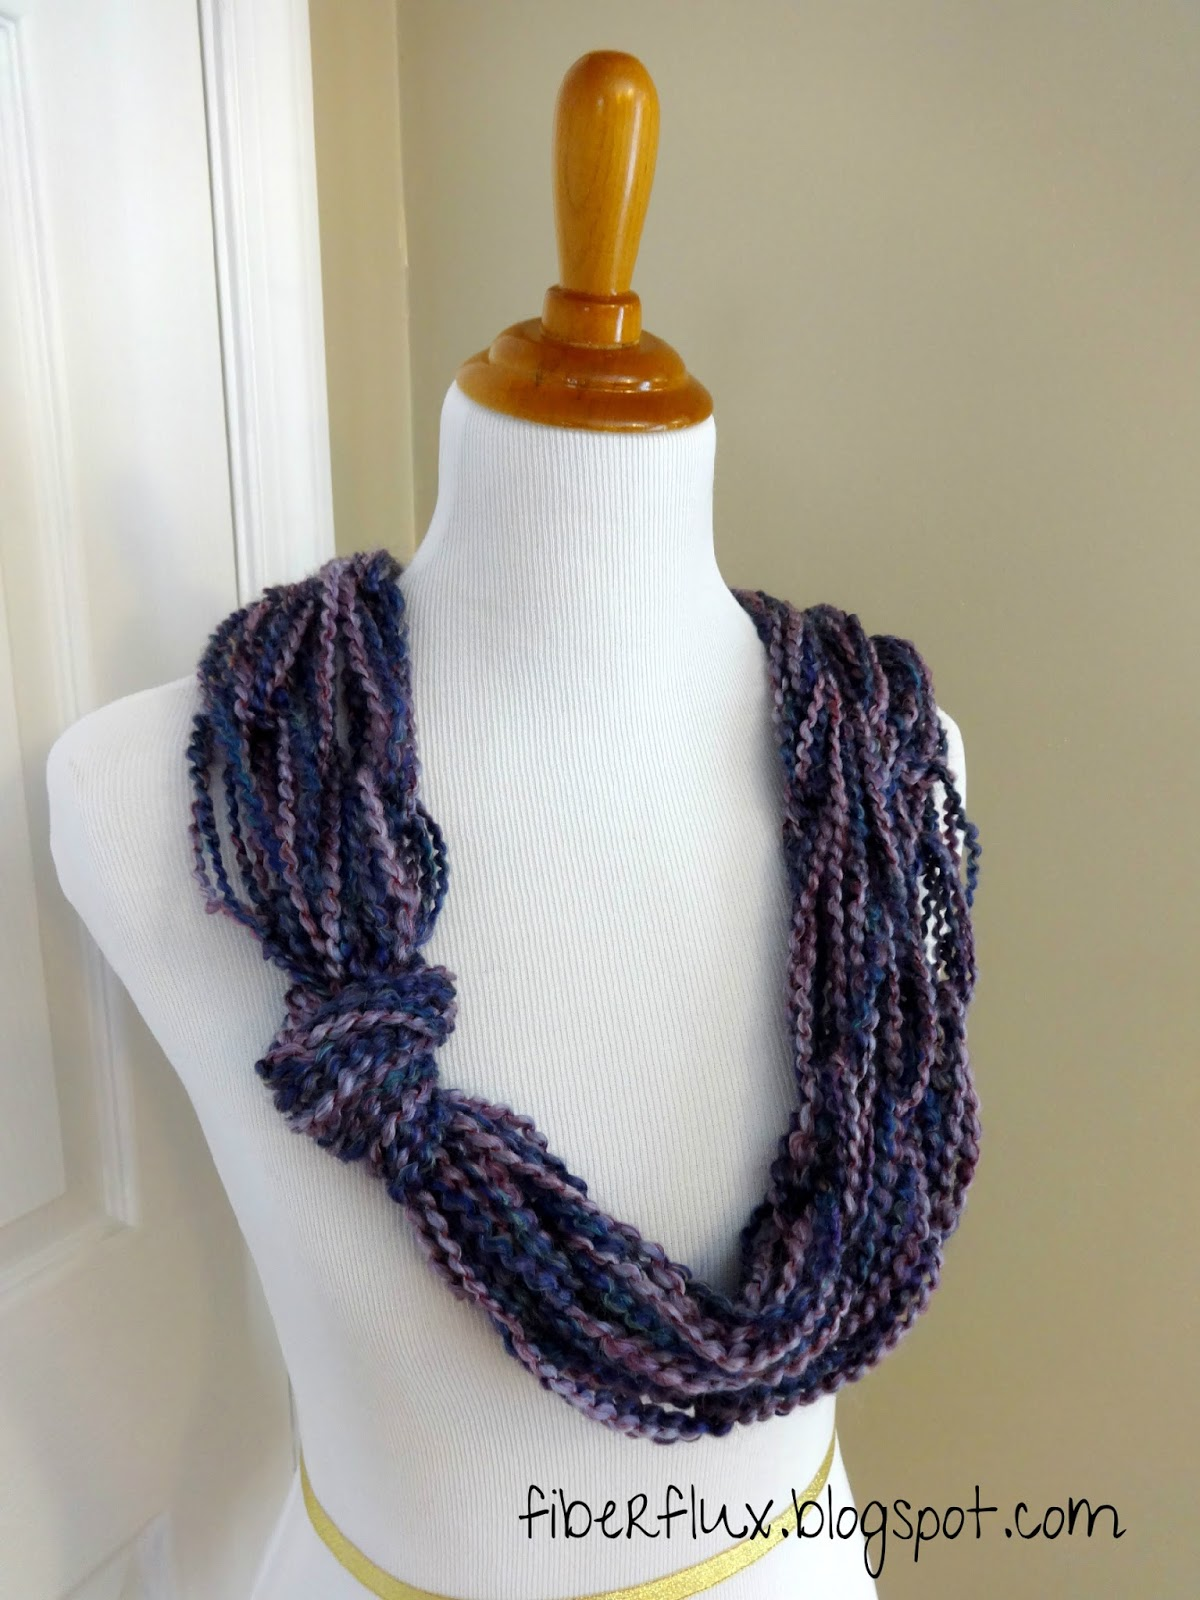 Fiber Flux: Free Knitting Pattern...Arm Knit Knotted Cowl!